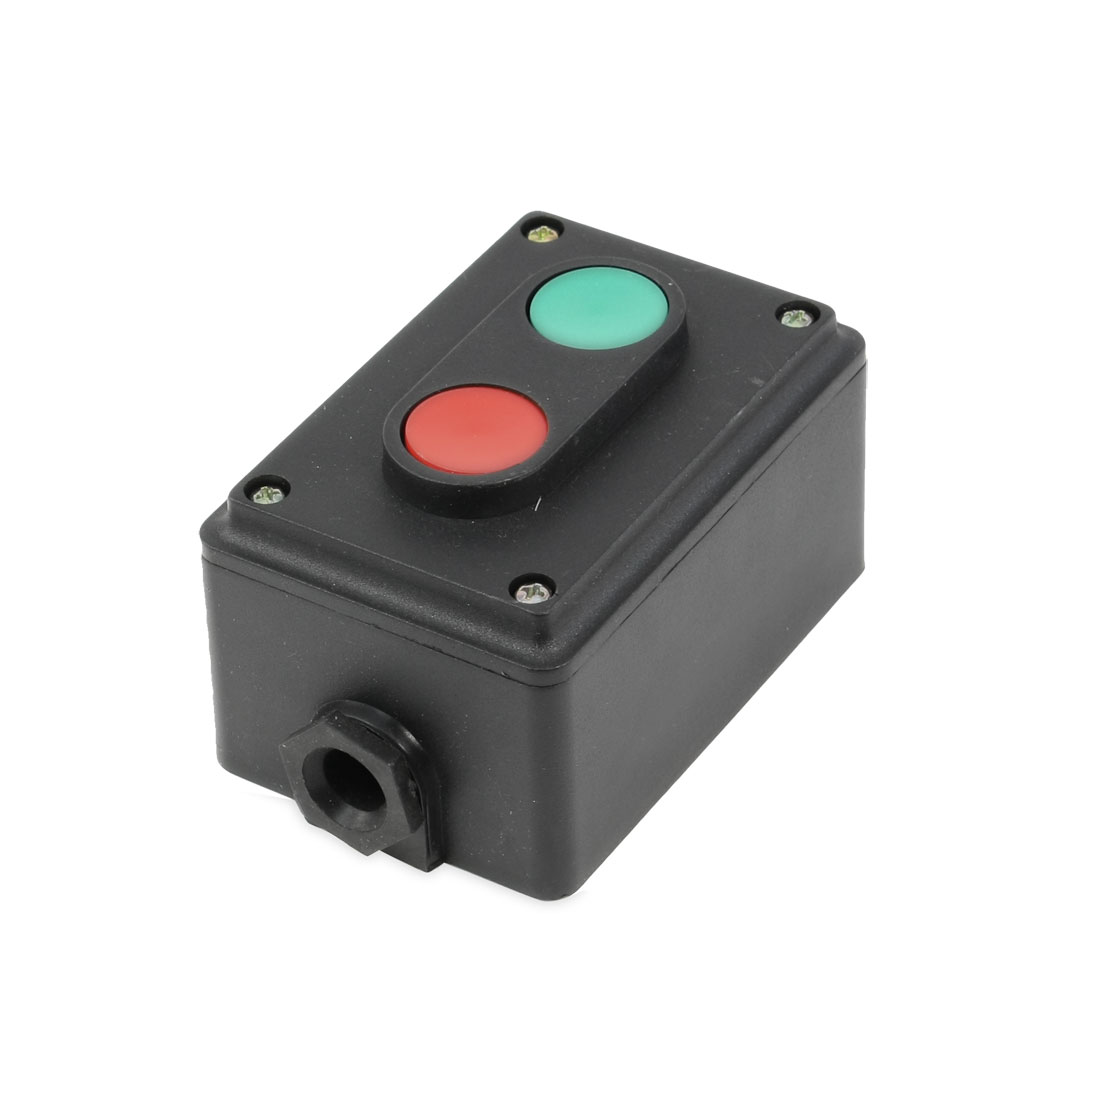 AC 380V 5A NO Momentary Red Green 2 Push Button Switch Station